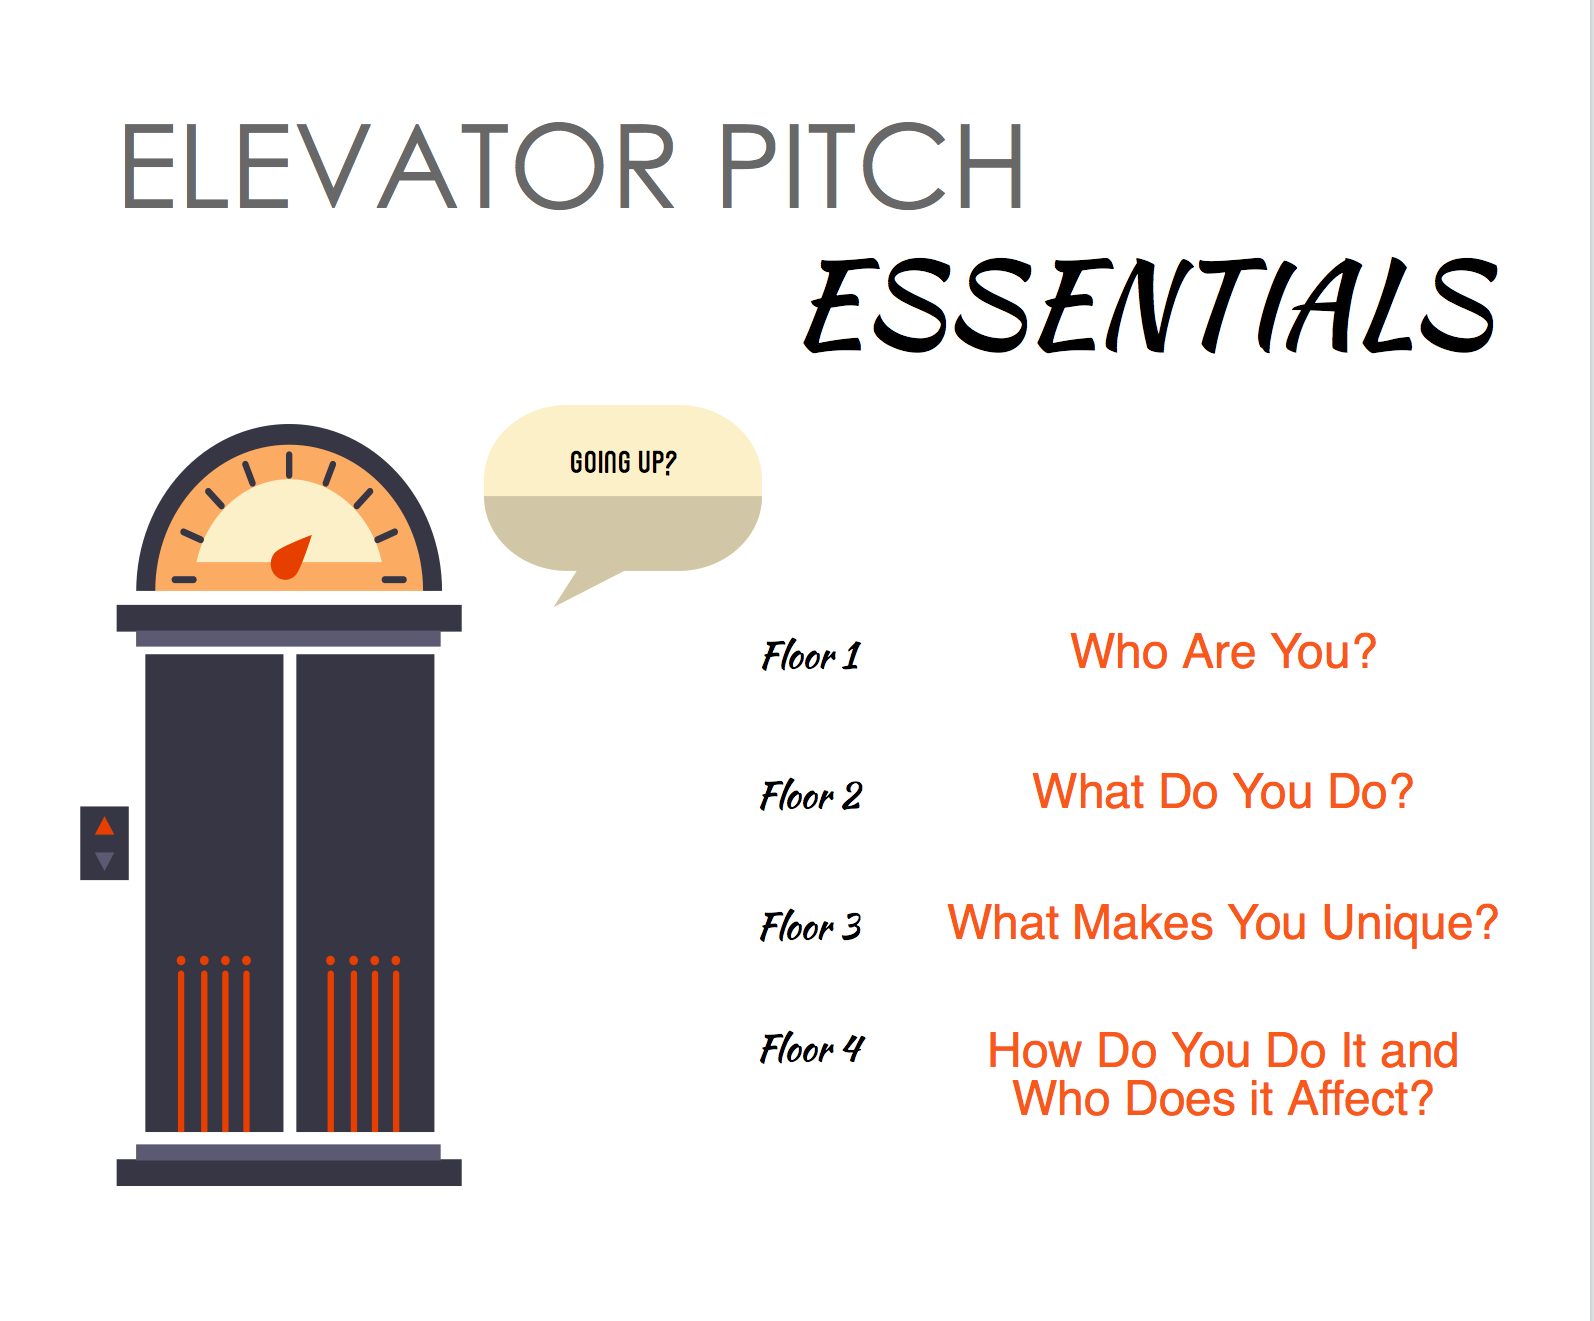 How To Craft An Elevator Pitch | Rise Networks